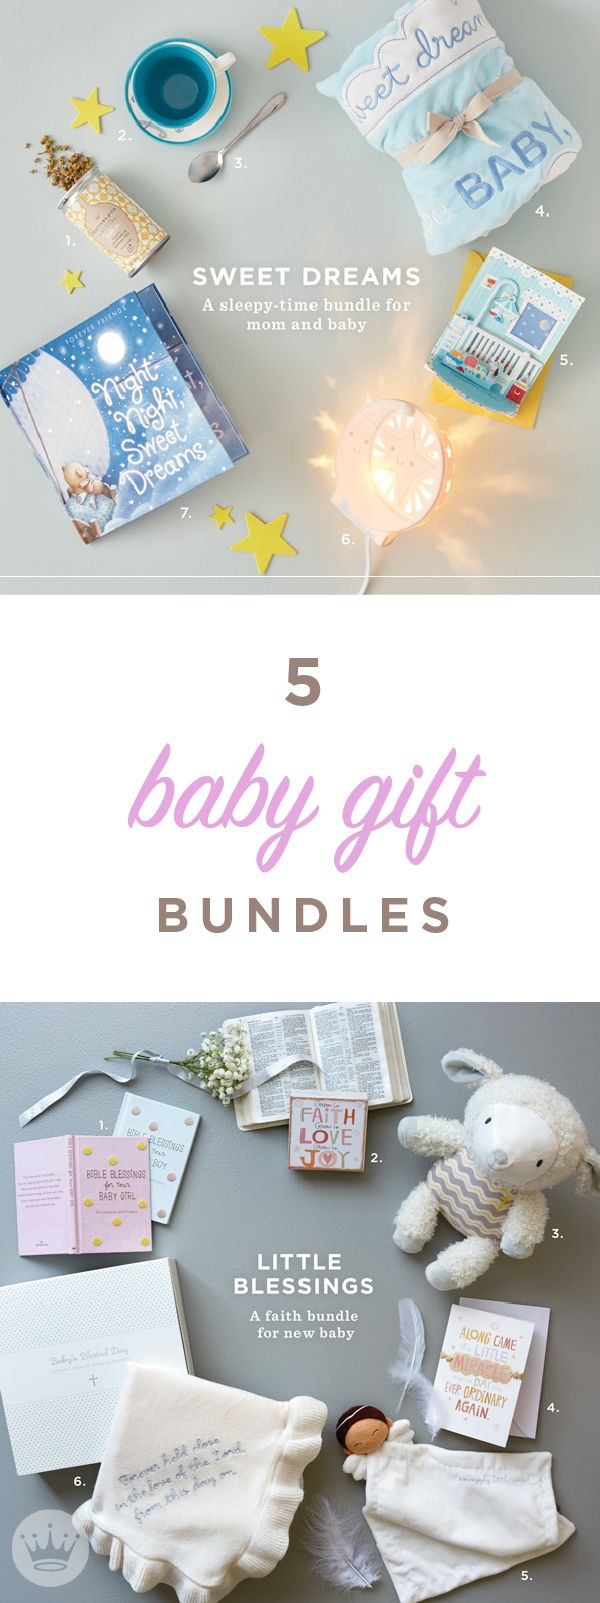 327 best images about baby gifts ideas on pinterest special gifts